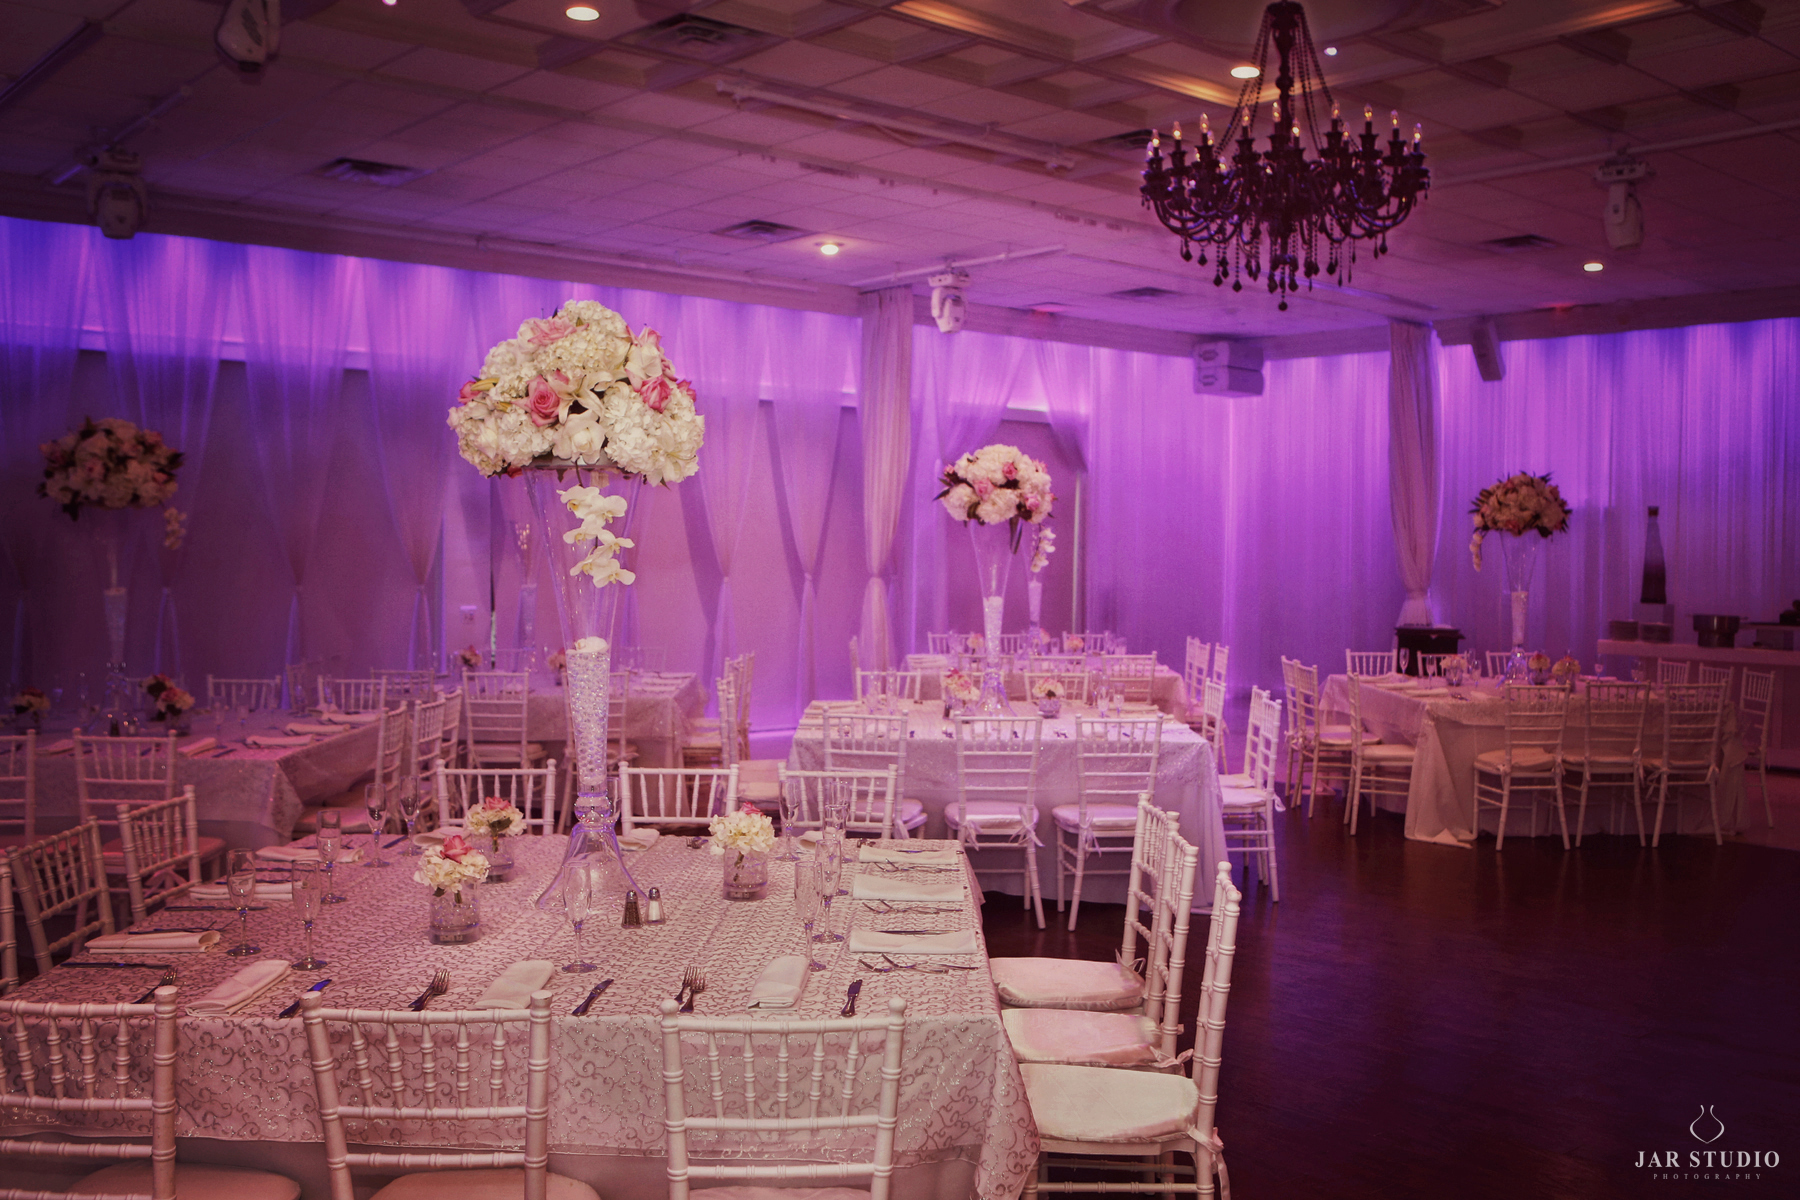 27-lavan-events-kosher-catering-orlando-luxury-wedding-photographer-jarstudio.JPG